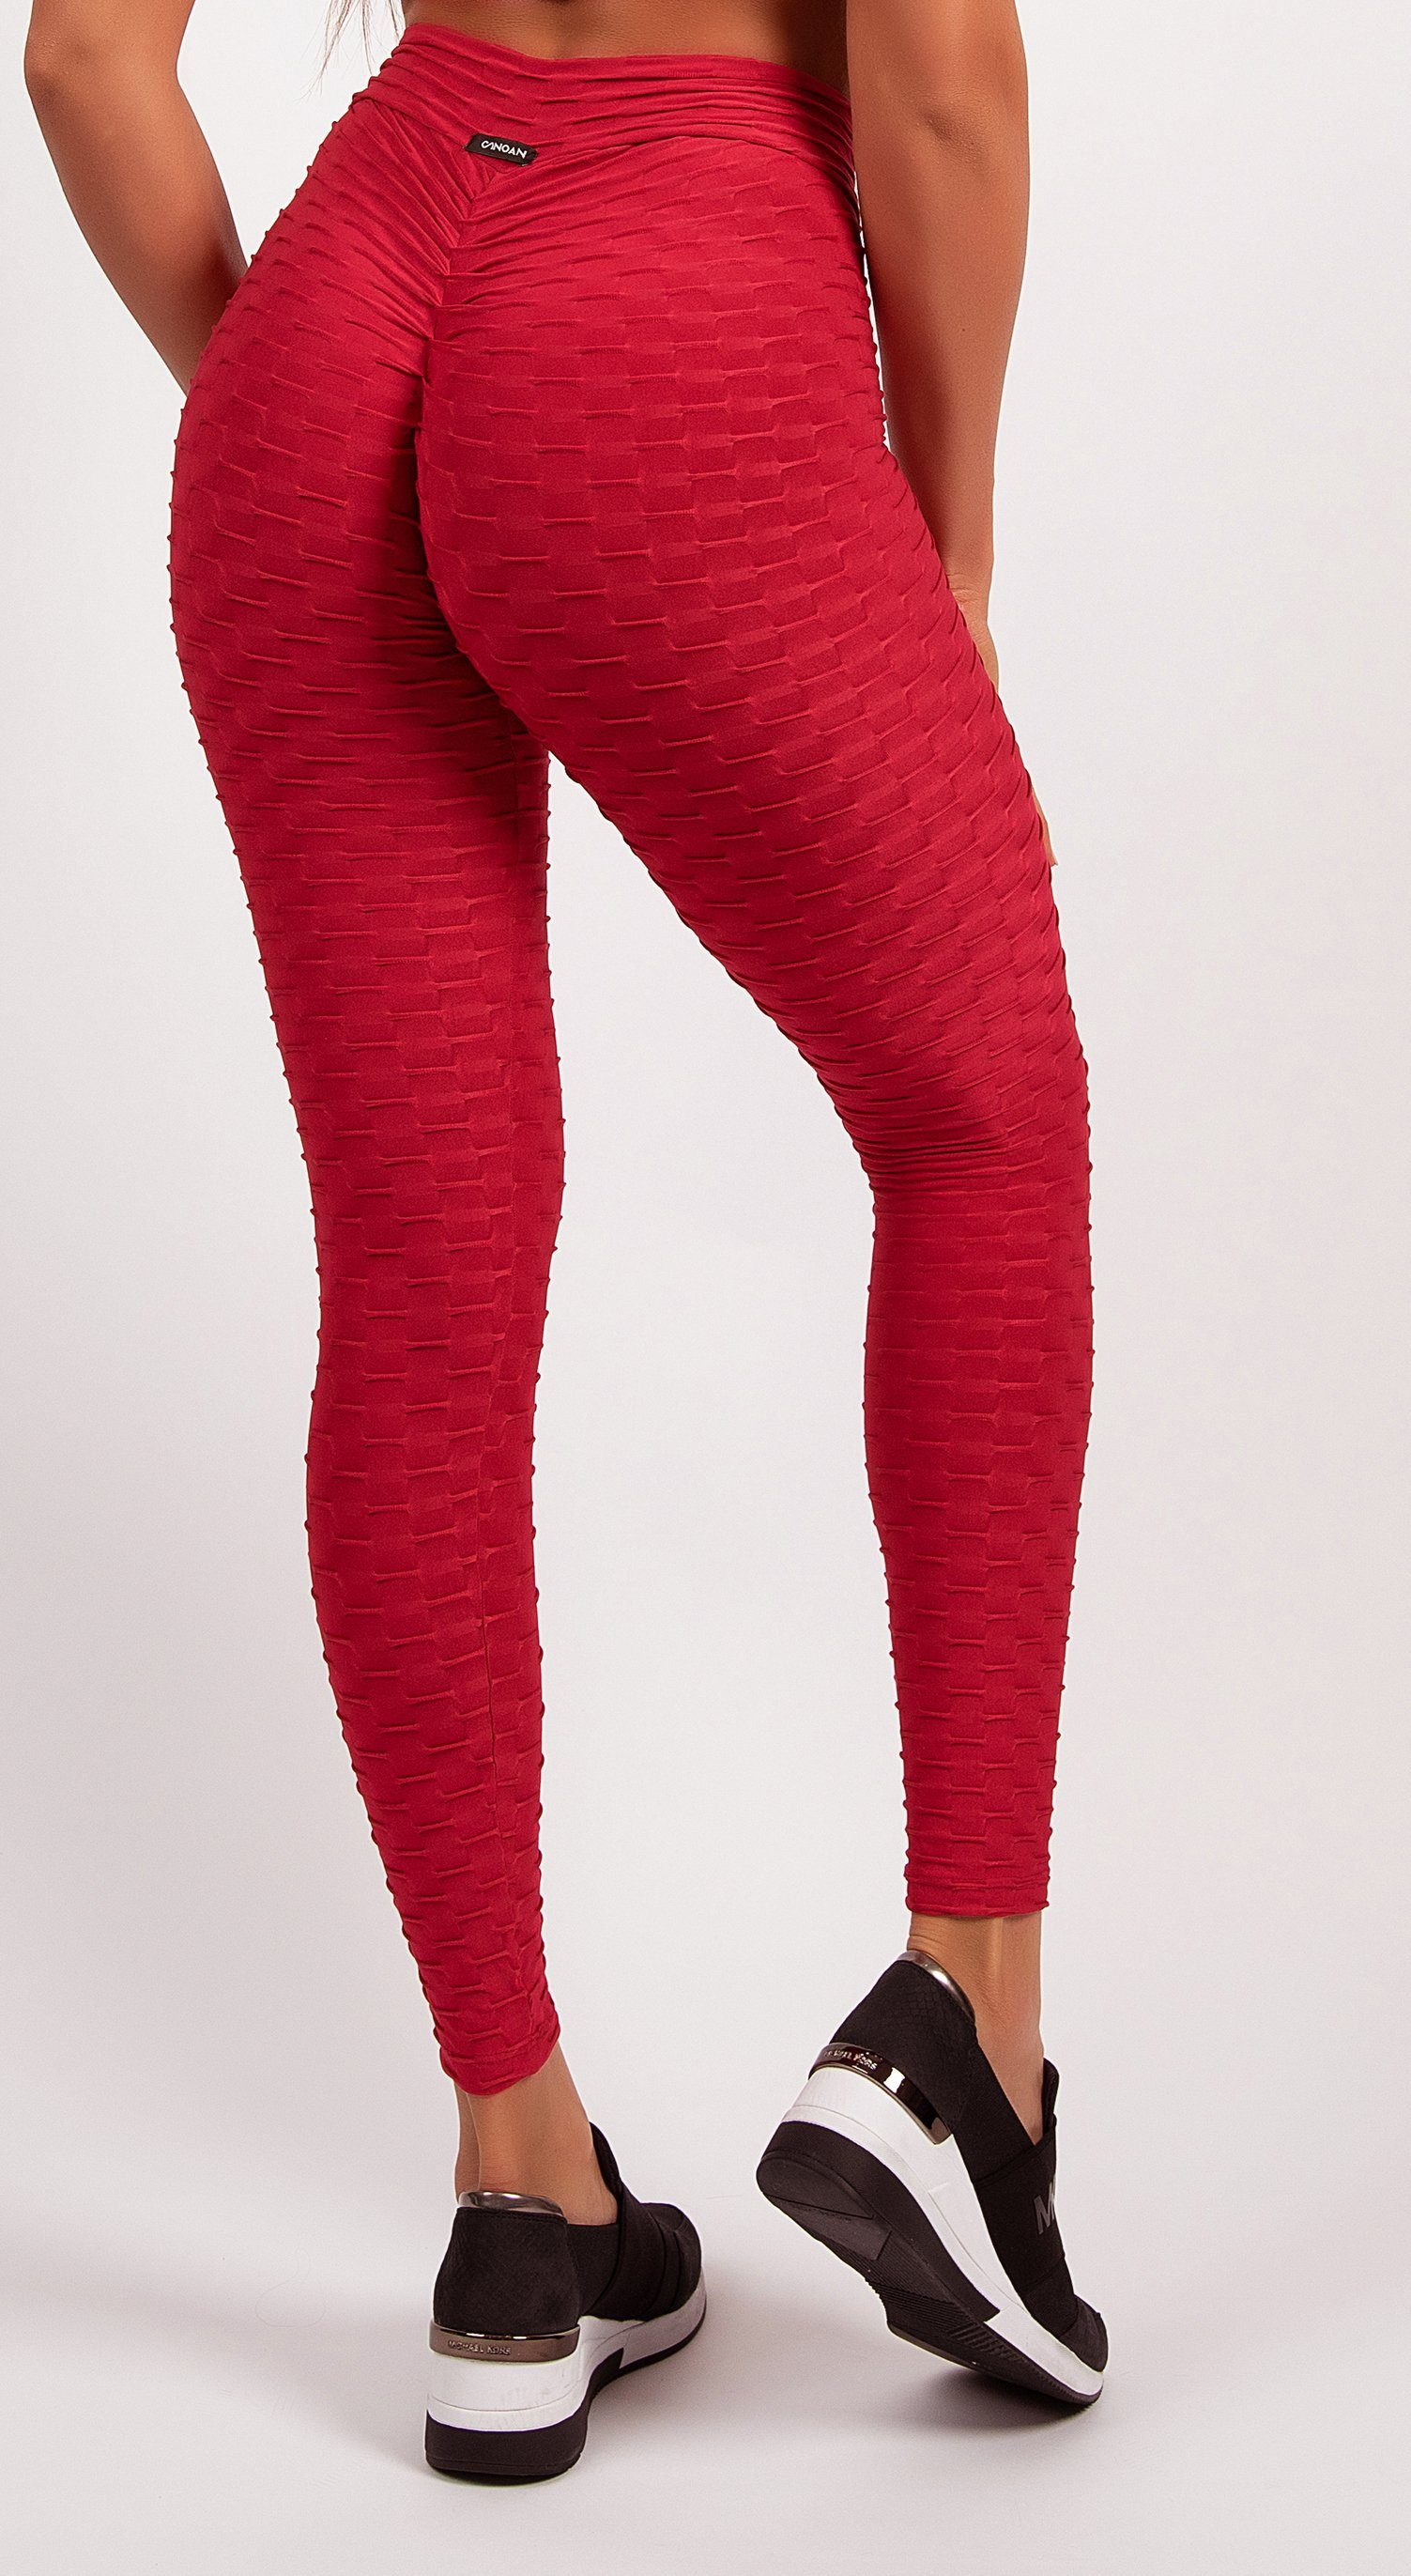 Anti Cellulite Honeycomb Textured Scrunch Booty Red Leggings